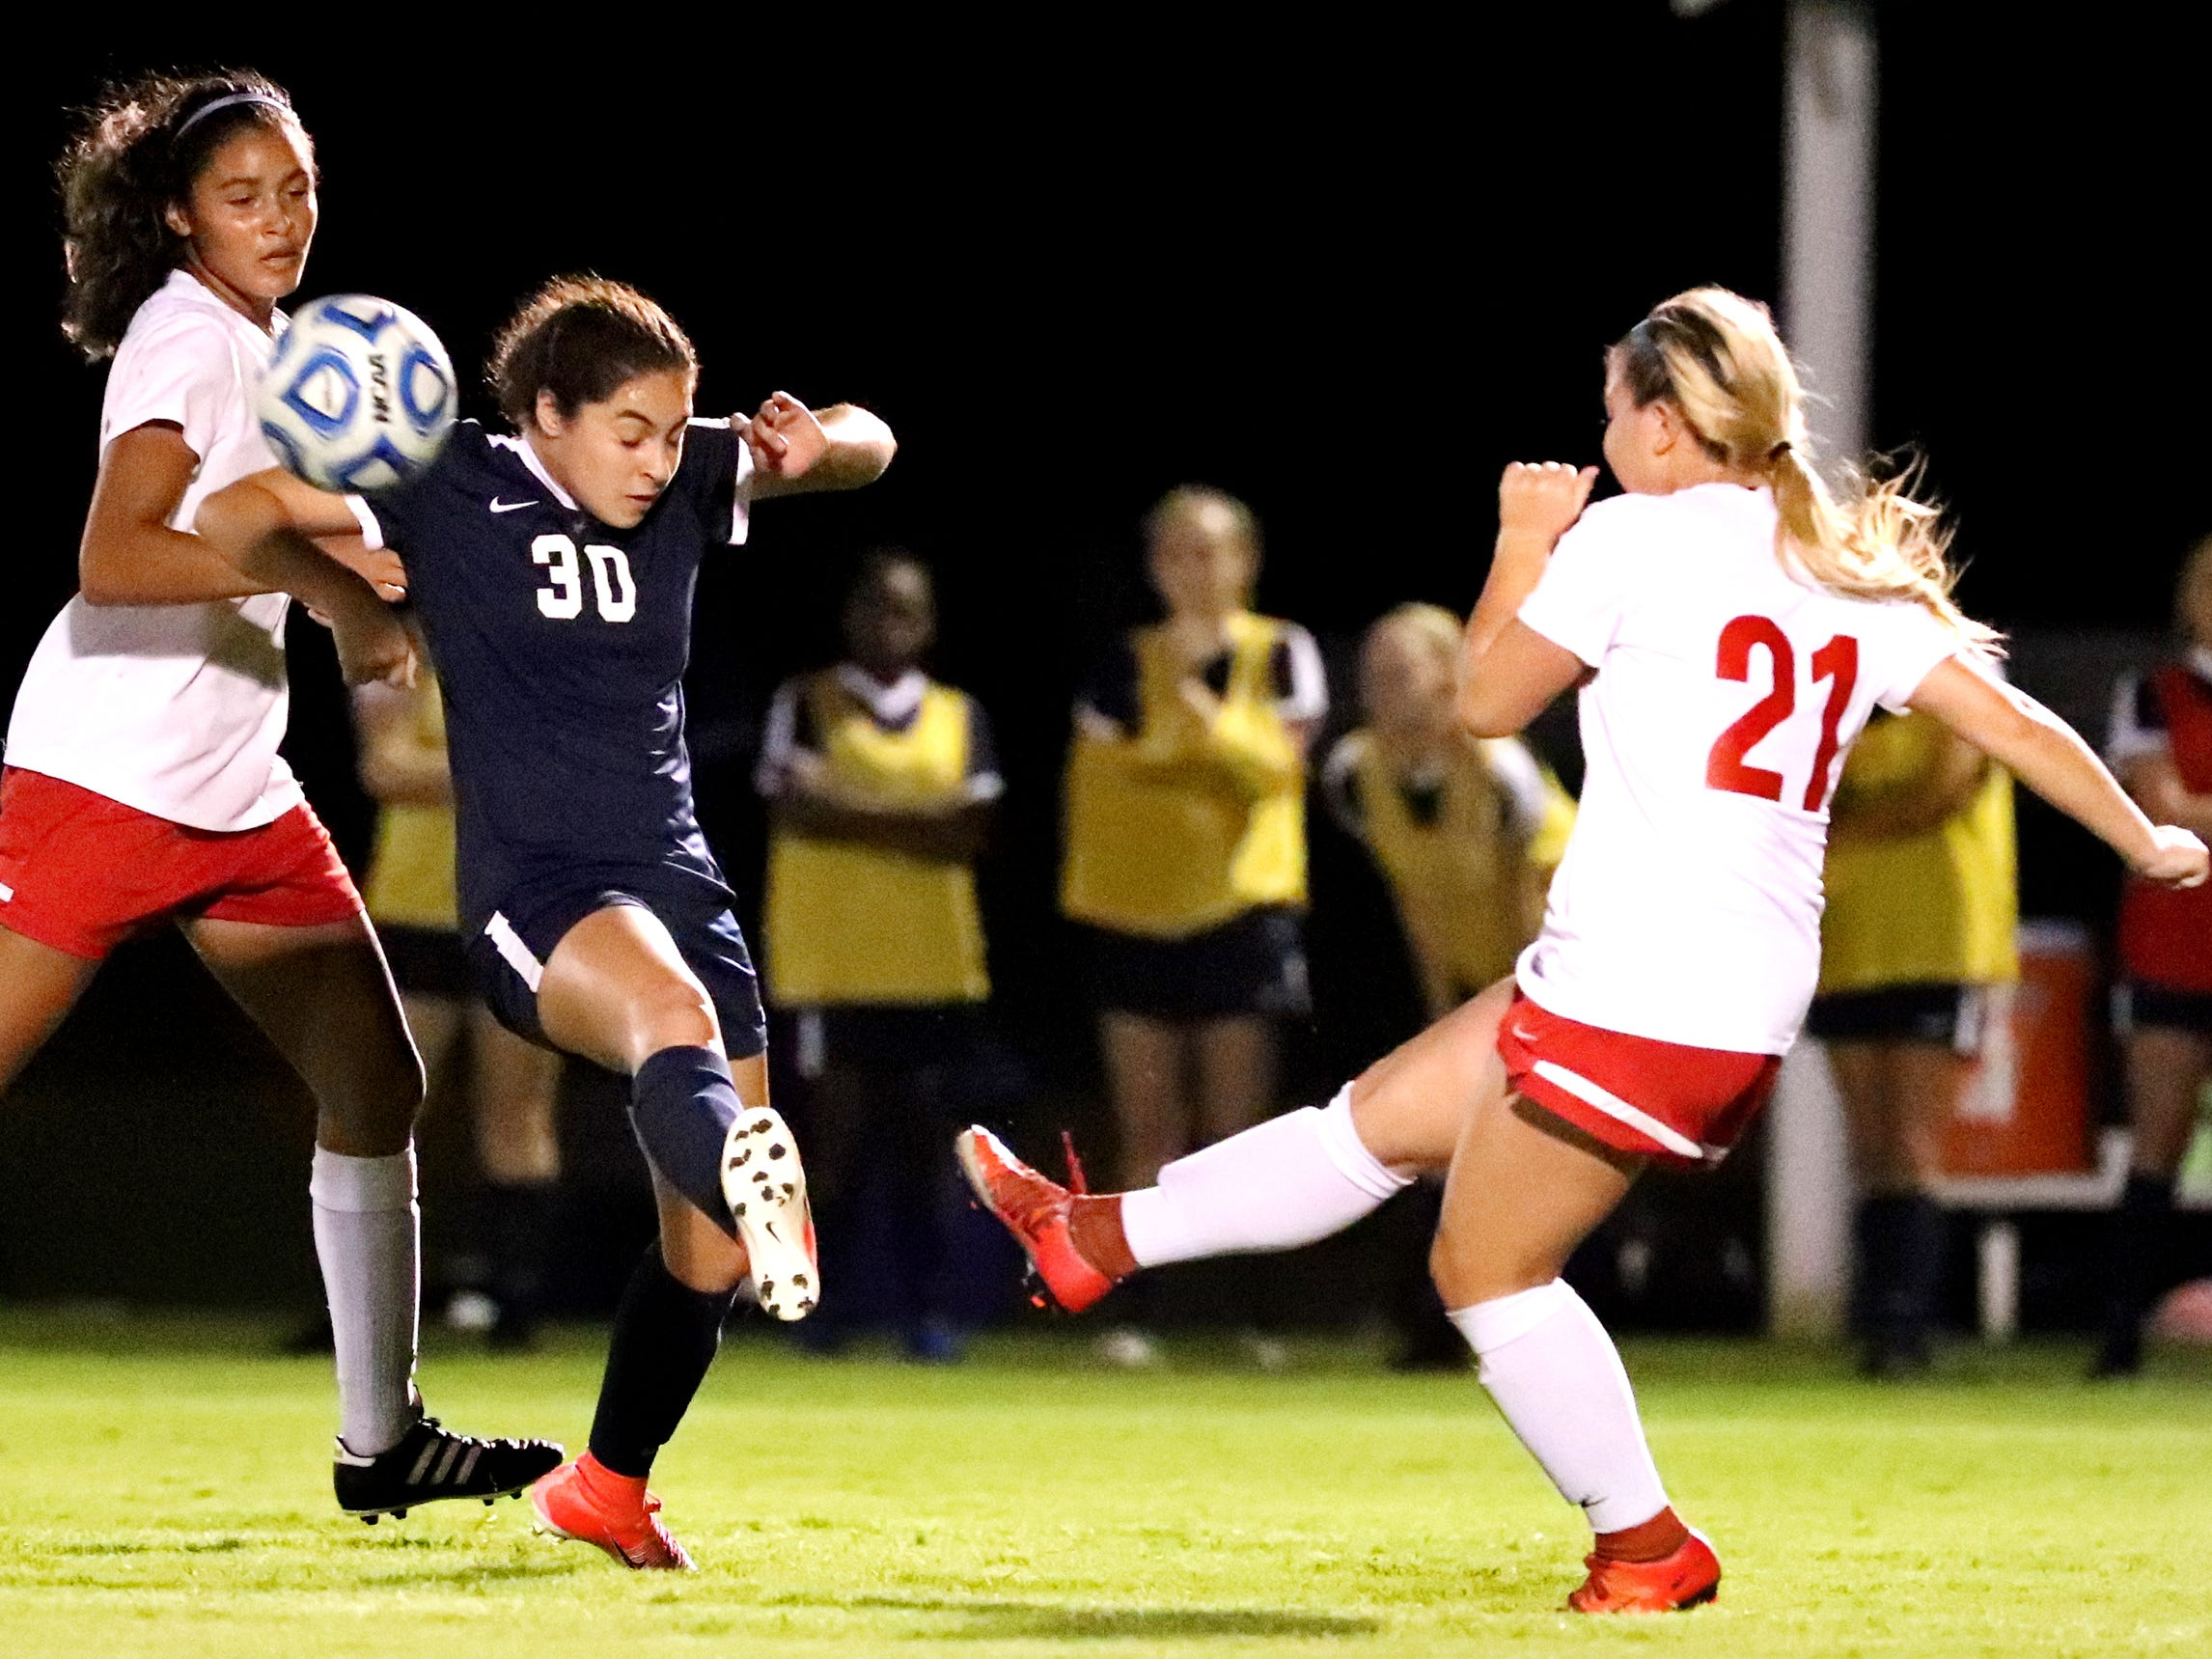 Oakland's Alysa Butera (15) kicks the ball as Siegel's Emily Sanchez (30) stops the ball and Oakland's Ella Riley(15) comes up from behind Sanchez, during the semifinals of the 7-AAA Soccer Tournament, on Tuesday,  Oct. 09, 2018 at the Siegel Soccer Complex.